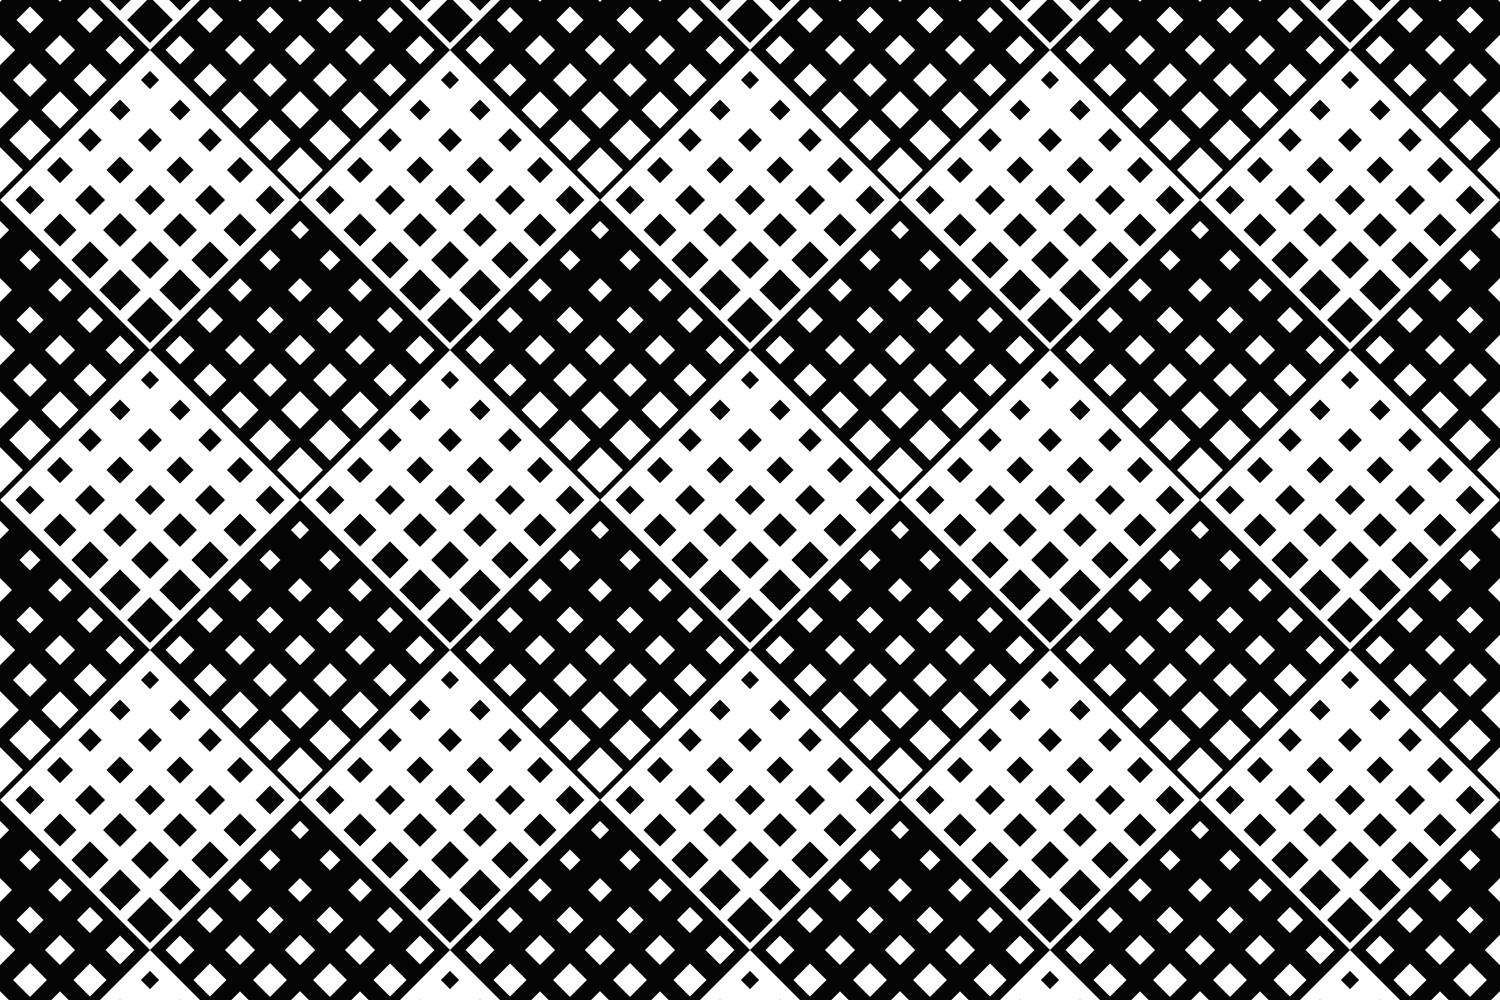 24 Seamless Square Patterns example image 14